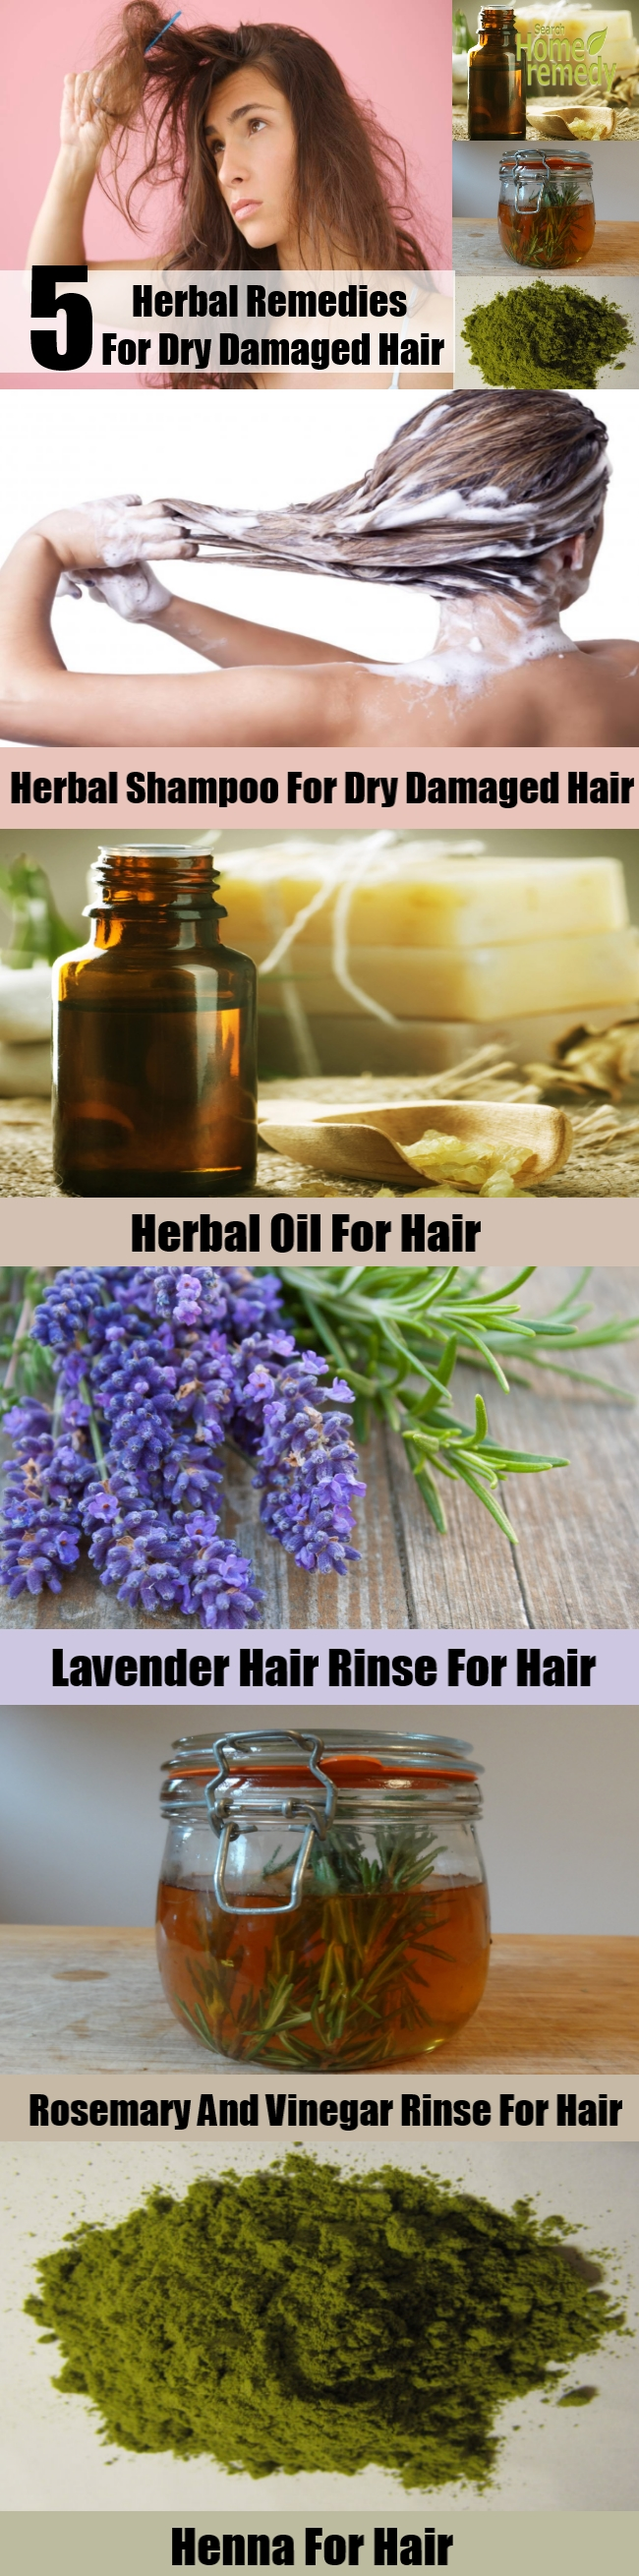 Five Herbal Remedies For Dry Damaged Hair